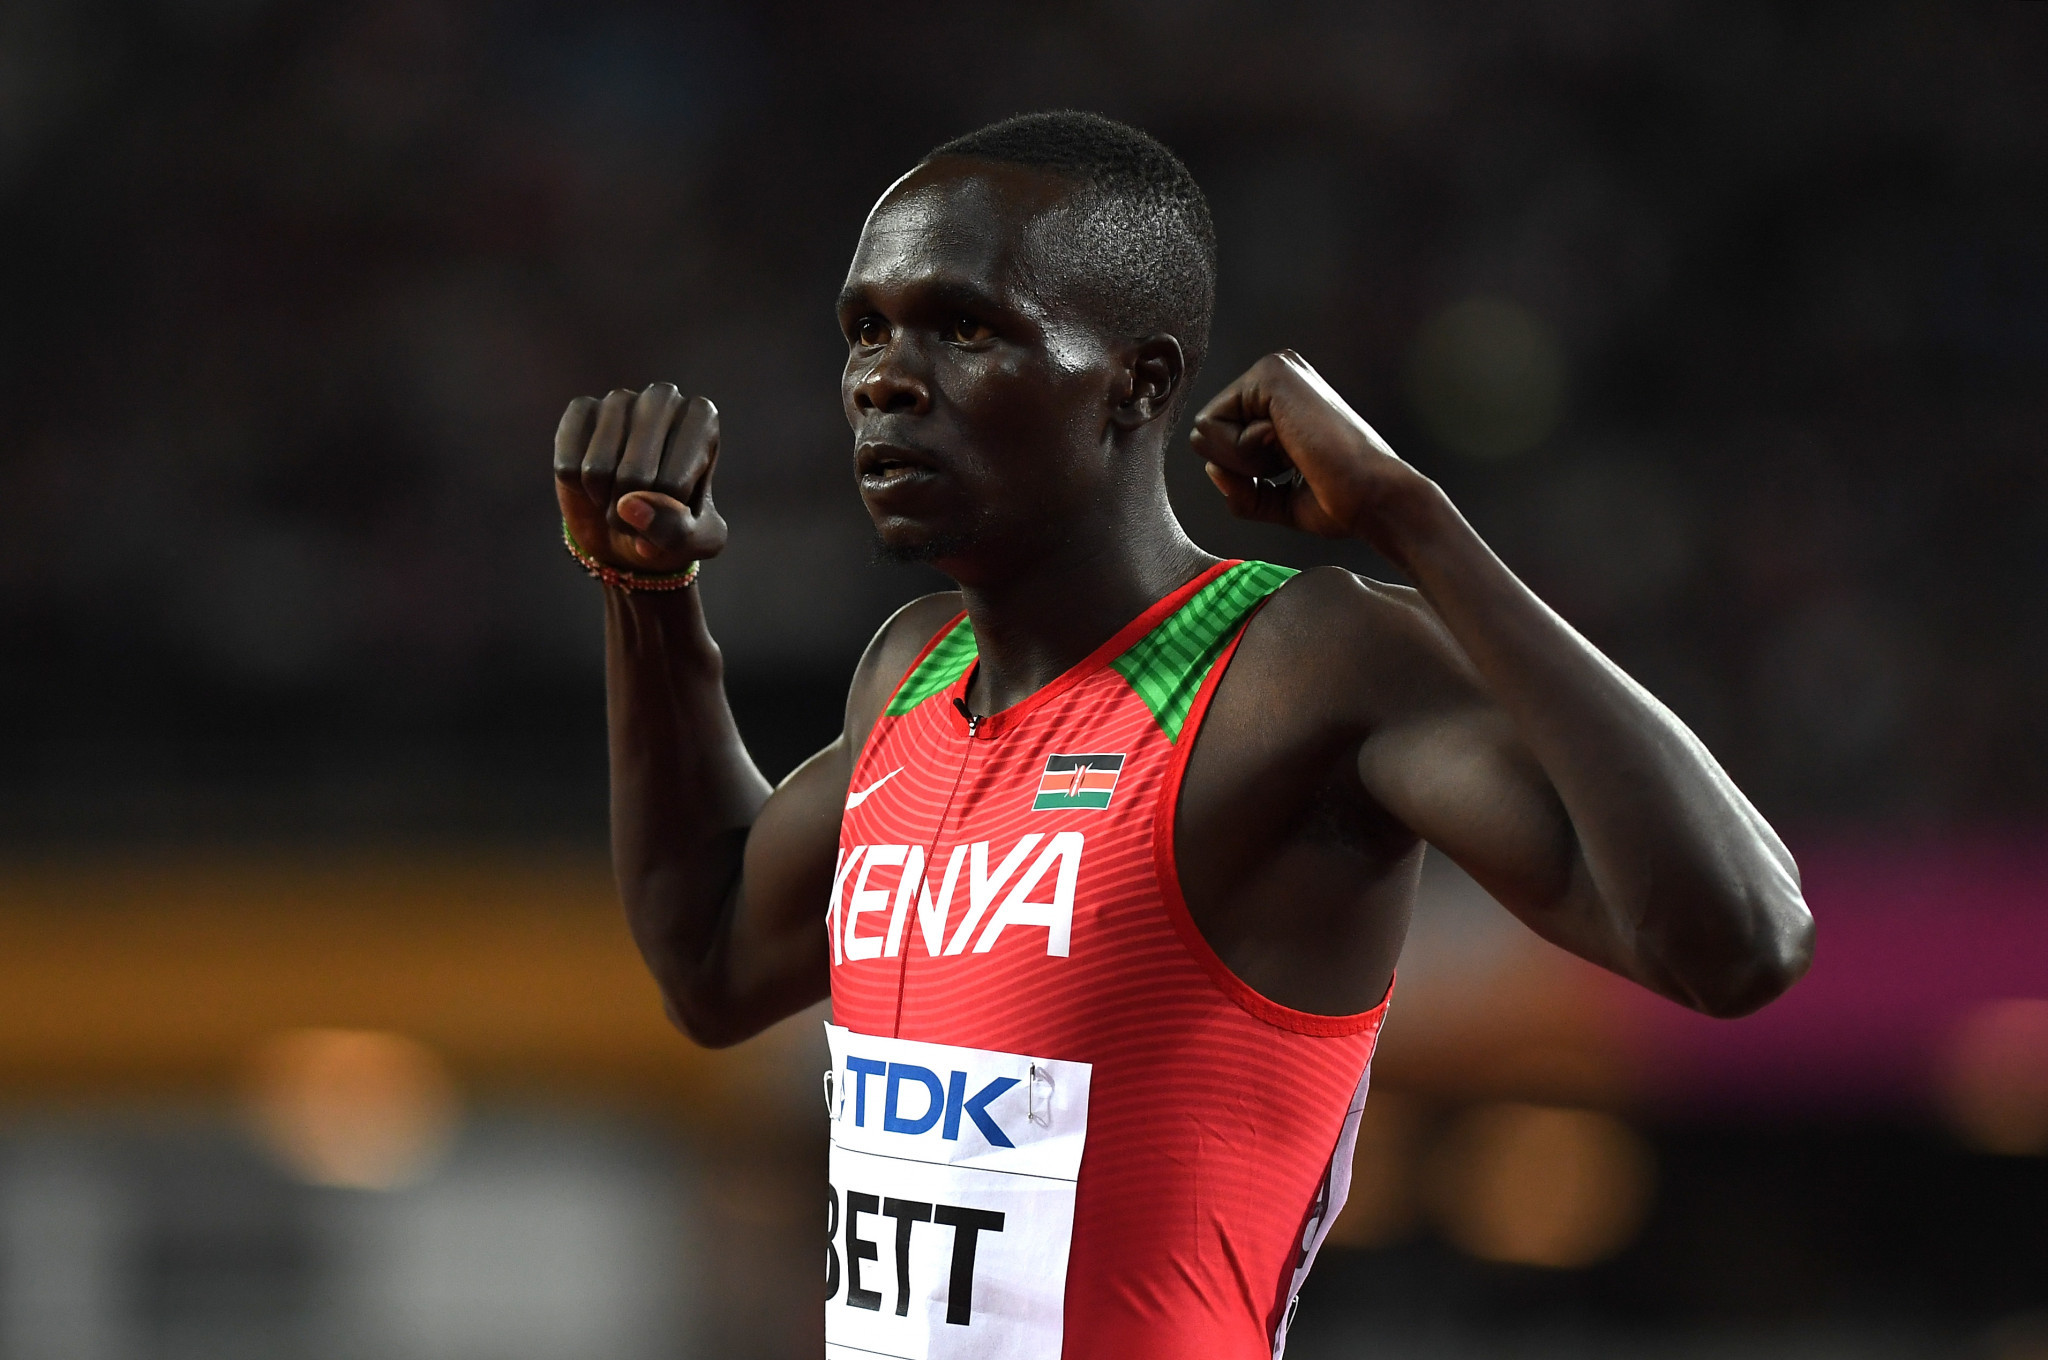 World Championships bronze medallist Kipyegon Bett has become the latest Kenyan athlete to be embroiled in an anti-doping case ©Getty Images